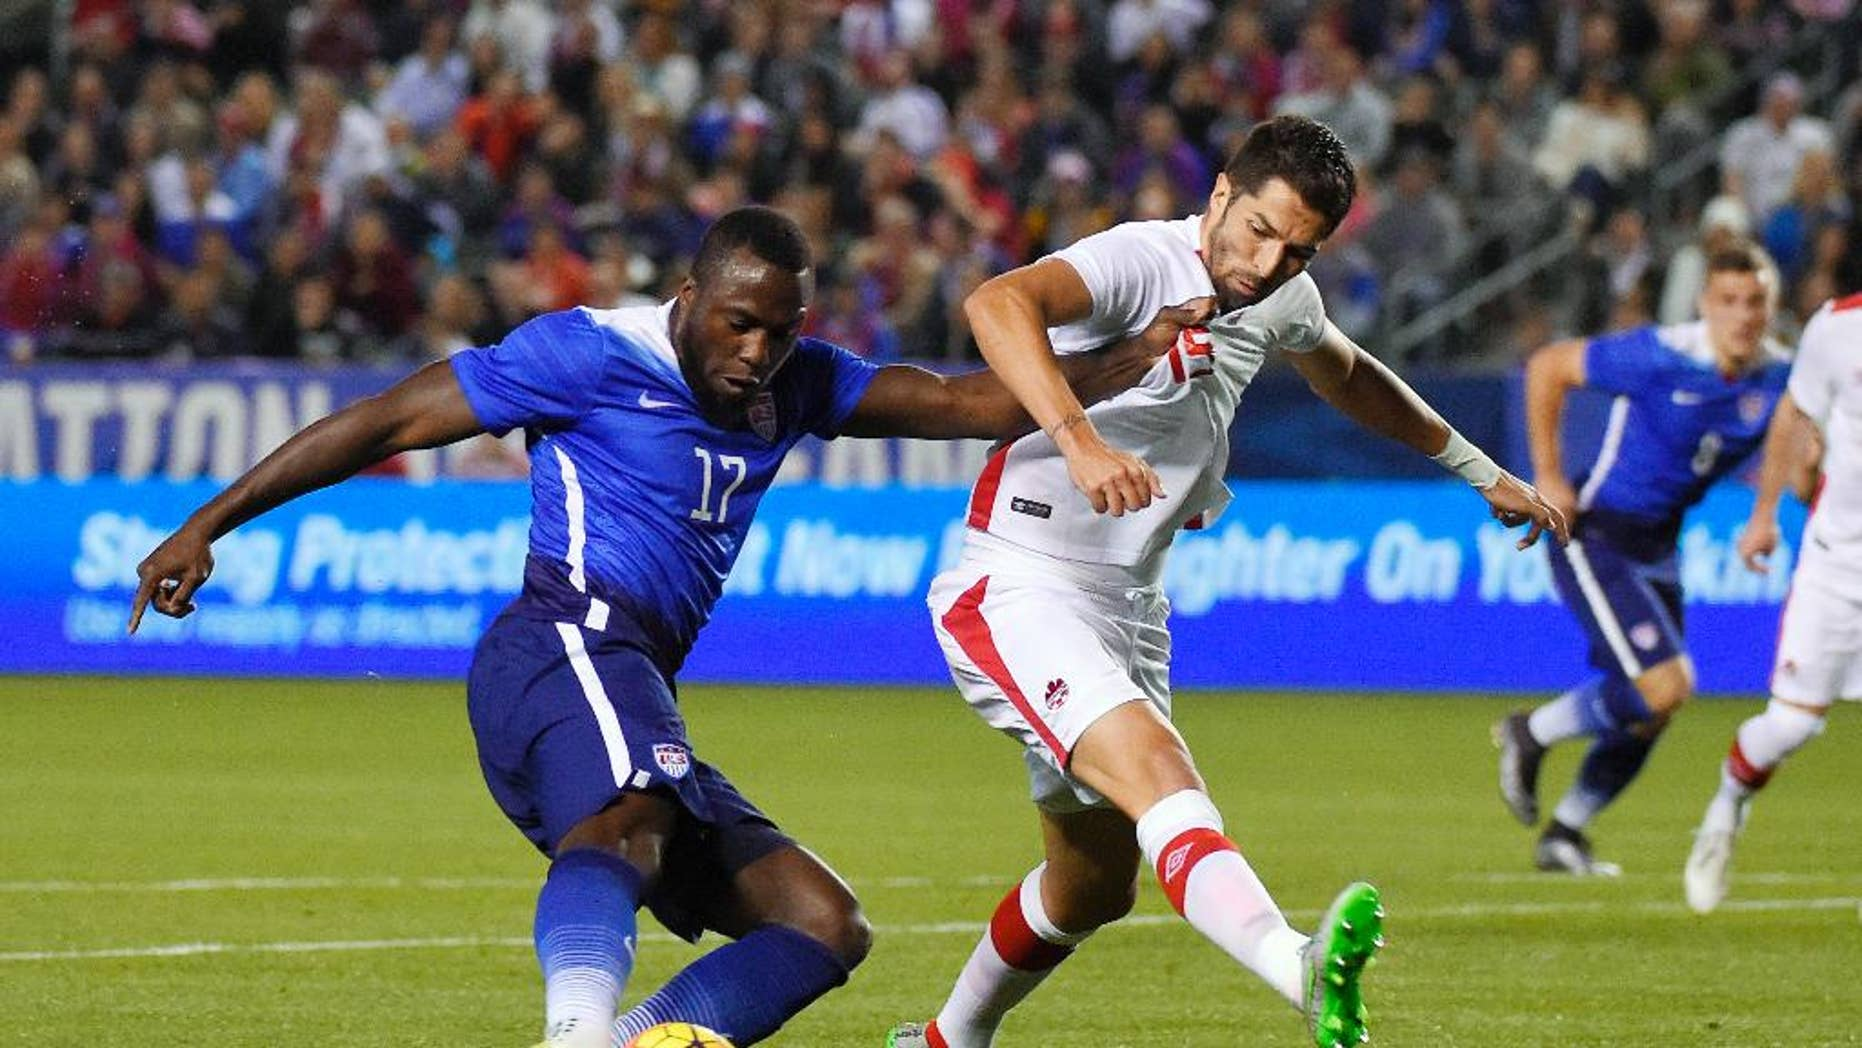 FILE - In this Friday Feb. 5, 2016, file photo, United States' Jozy Altidore, left, tries to shoot at goal as Canada's Steven Vitoria vie defends during the first half of an exhibition soccer match in Carson, Calif. Altidore appears certain to miss the Copa America Centenario following yet another hamstring injury. Altidore, who hasn't scored for Toronto in Major League Soccer this season, got hurt Saturday, May 14, 2016, while taking a penalty kick against Vancouver that was saved. Toronto said Monday the 26-year-old will be sidelined for six-to-eight weeks. (AP Photo/Mark J. Terrill, File)